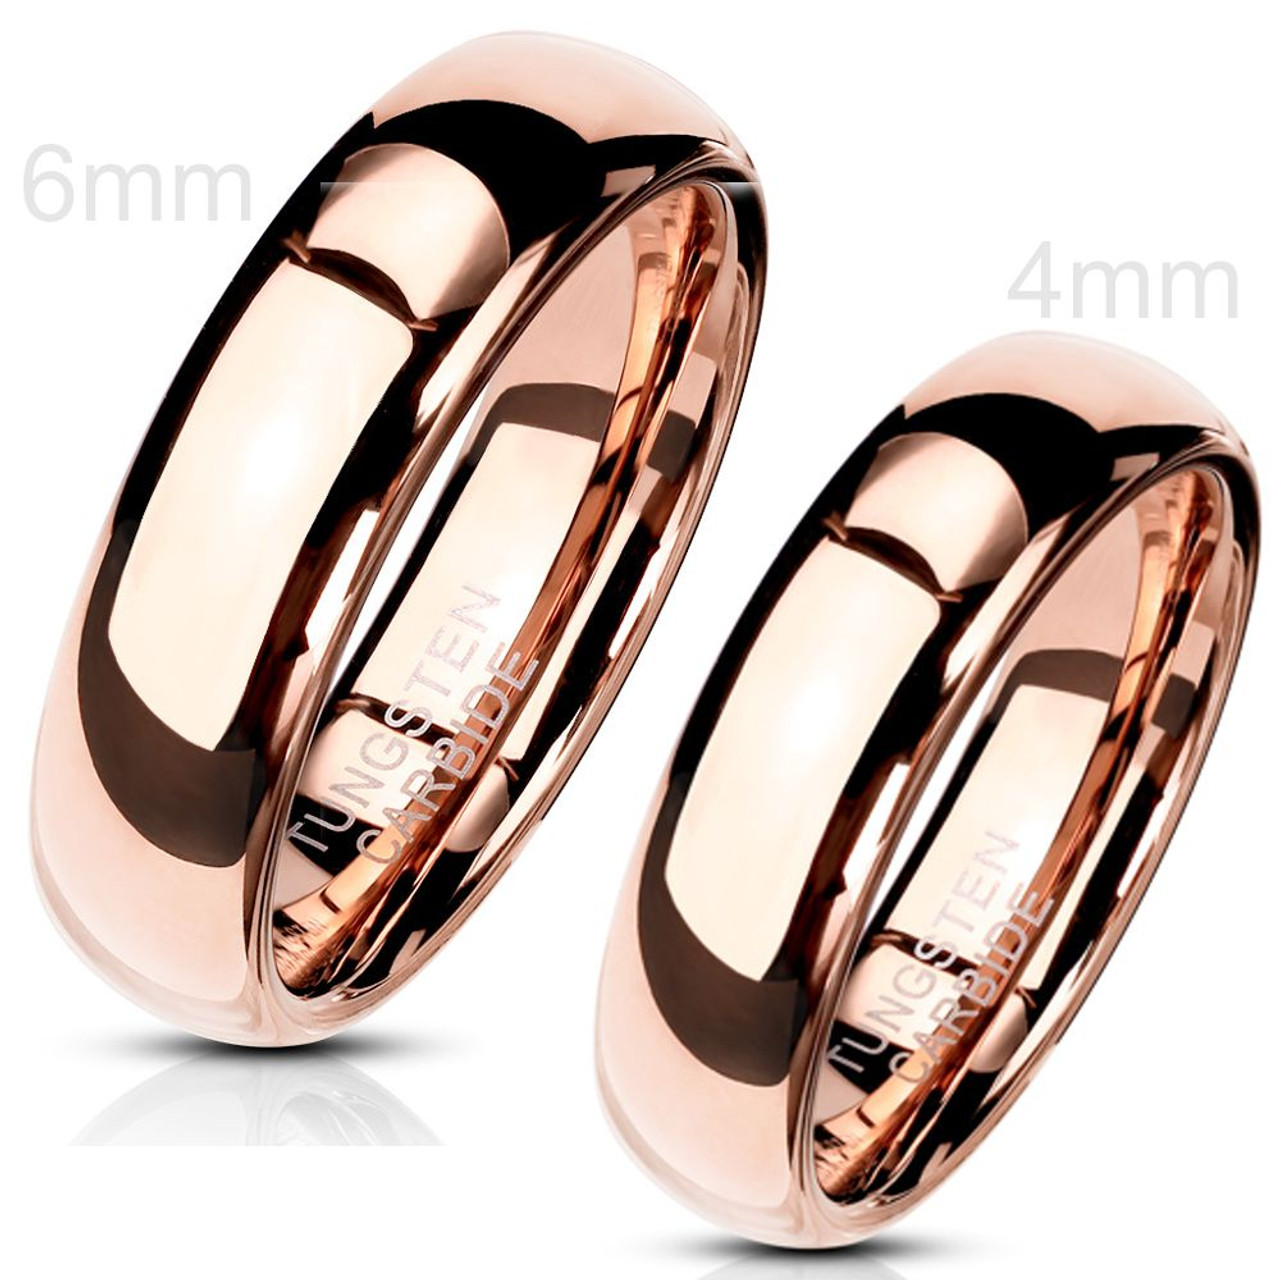 Personalized Inside Engraving Cobalt Wedding Band Ring 8mm Gold Tone Center With Shiny